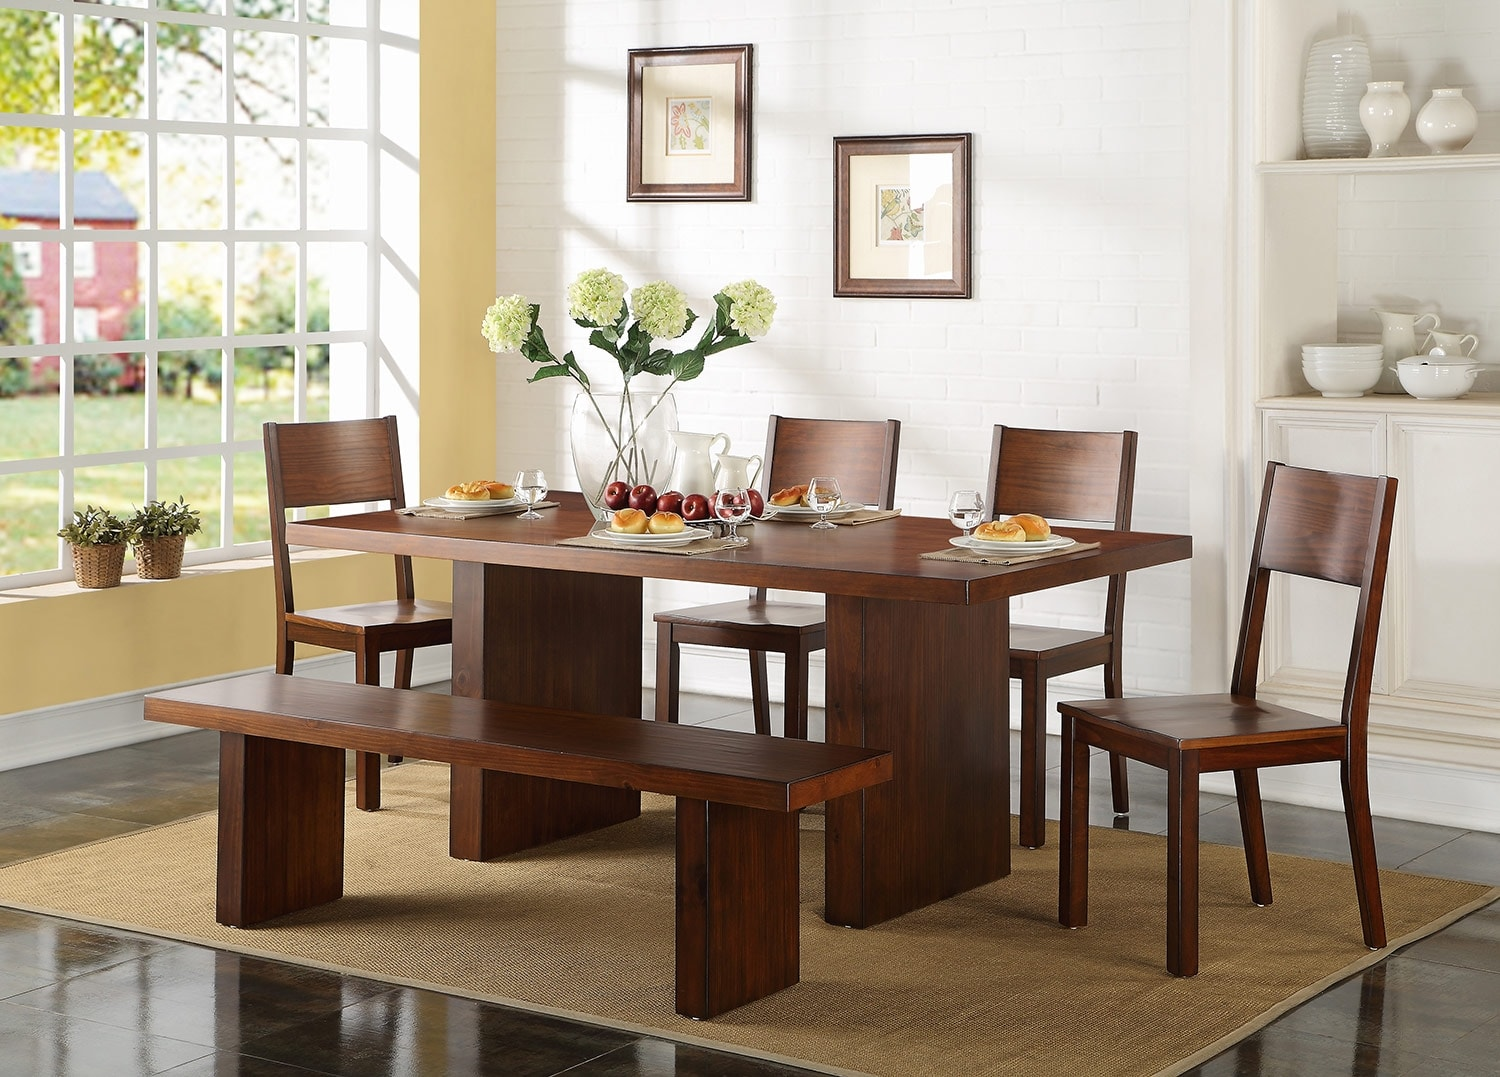 Dining Room Furniture - Austin 6 Pc. Dinette Package w/ Bench